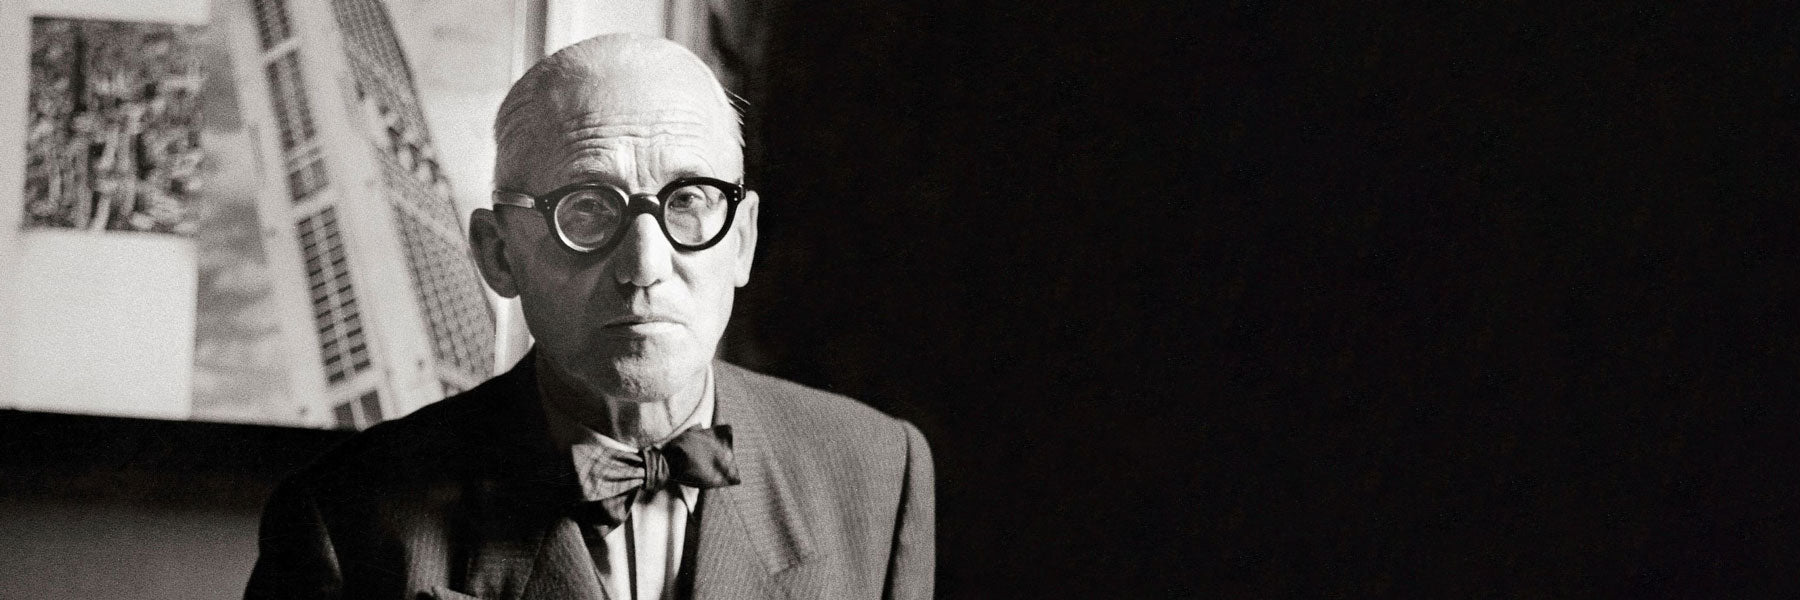 Le Corbusier an eyewear icon